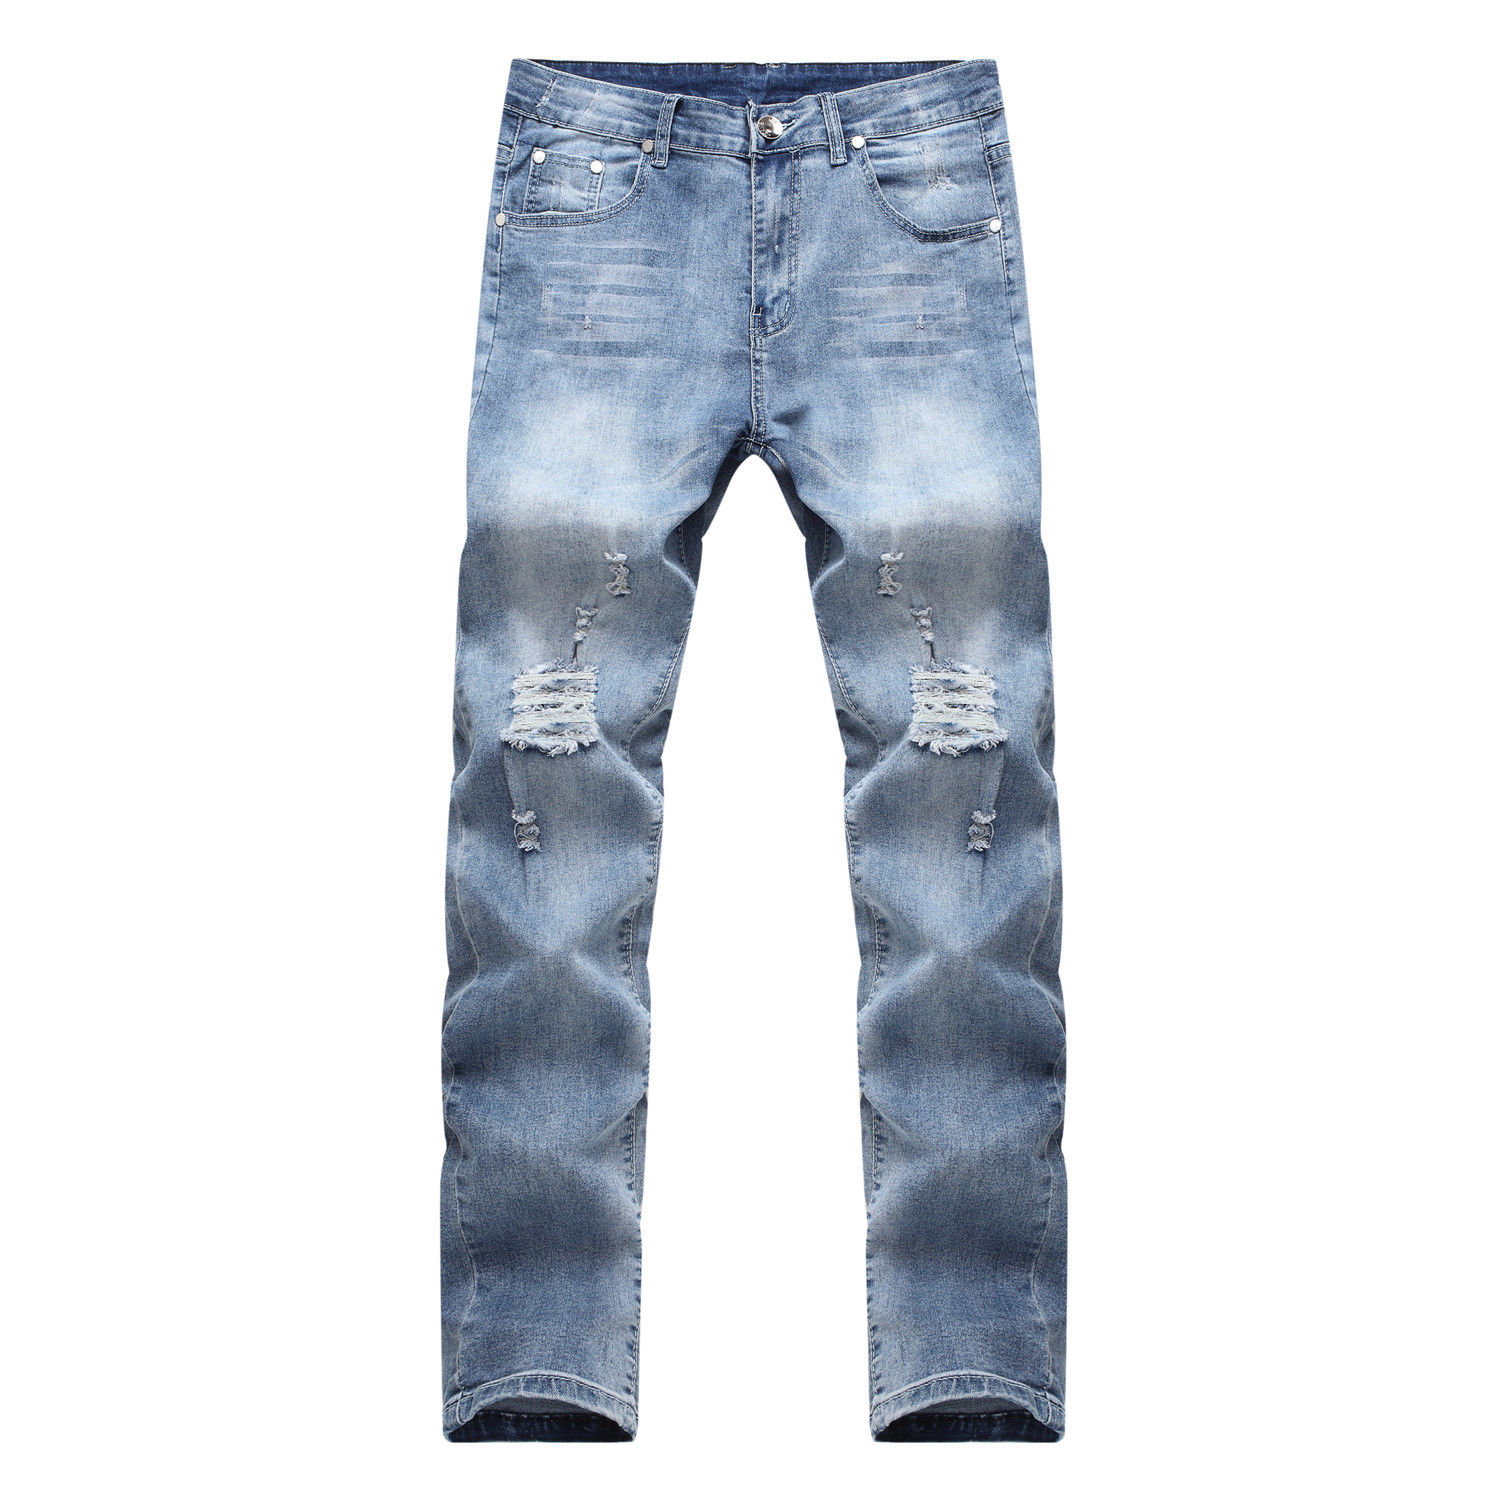 New Fashion Mens Designed Straight Slim Fit Denim Trousers Casual Skinny Pants Stylish Mens Pencil Pants Long Skinny Hole Jeans new fashion spring autumn mens jeans slim fitness cotton elastic pants male clothing denim trousers